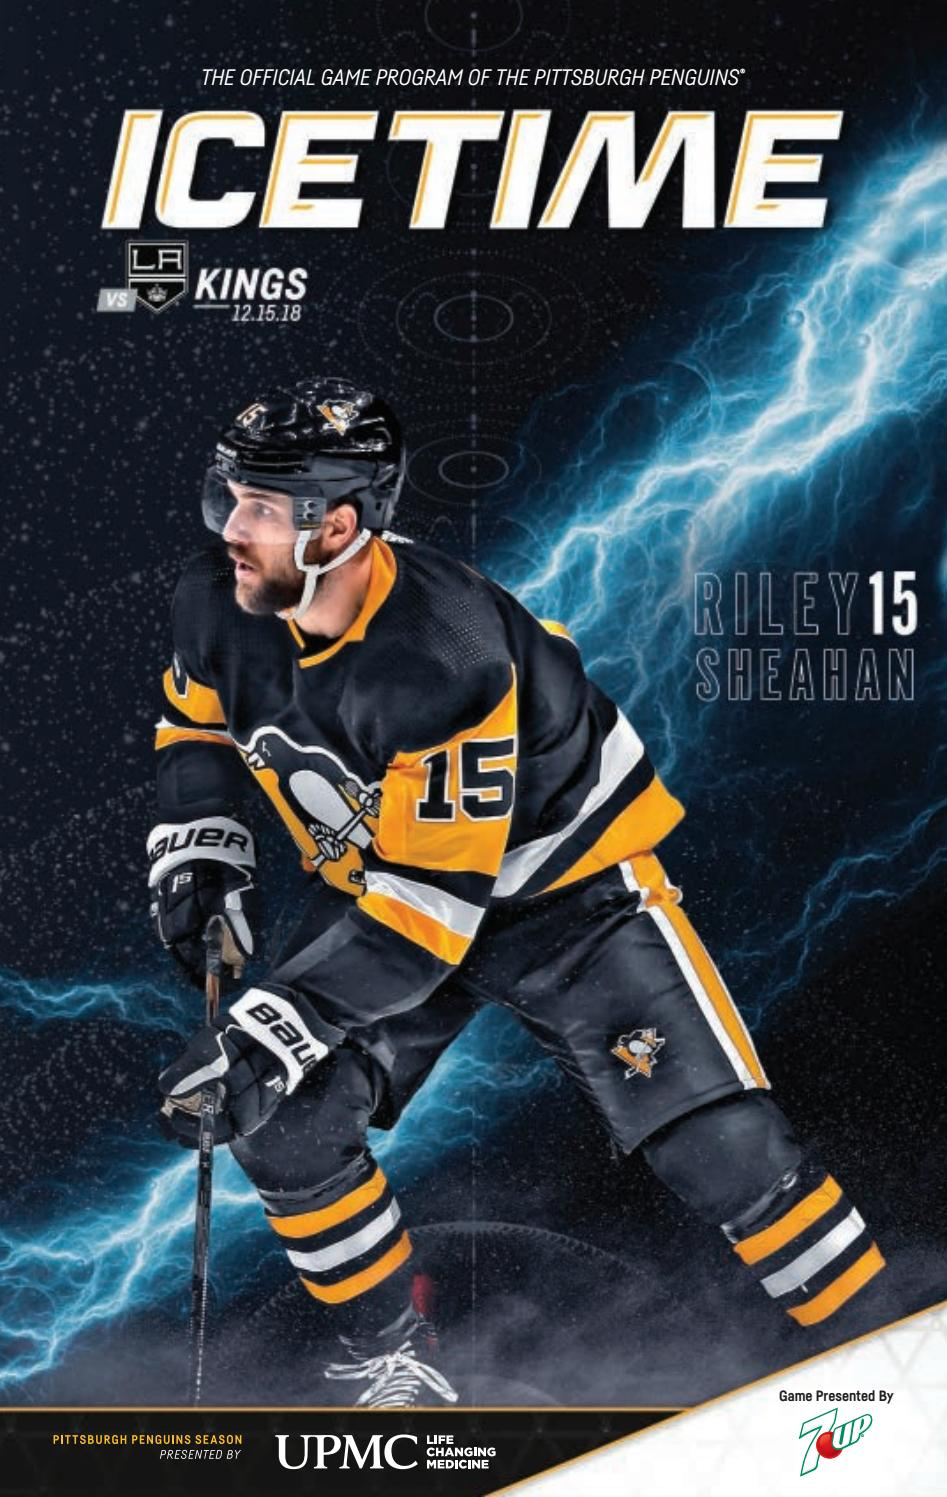 Icetime Game 17 Vs Los Angeles Kings 12 15 18 By Pittsburgh Penguins Issuu